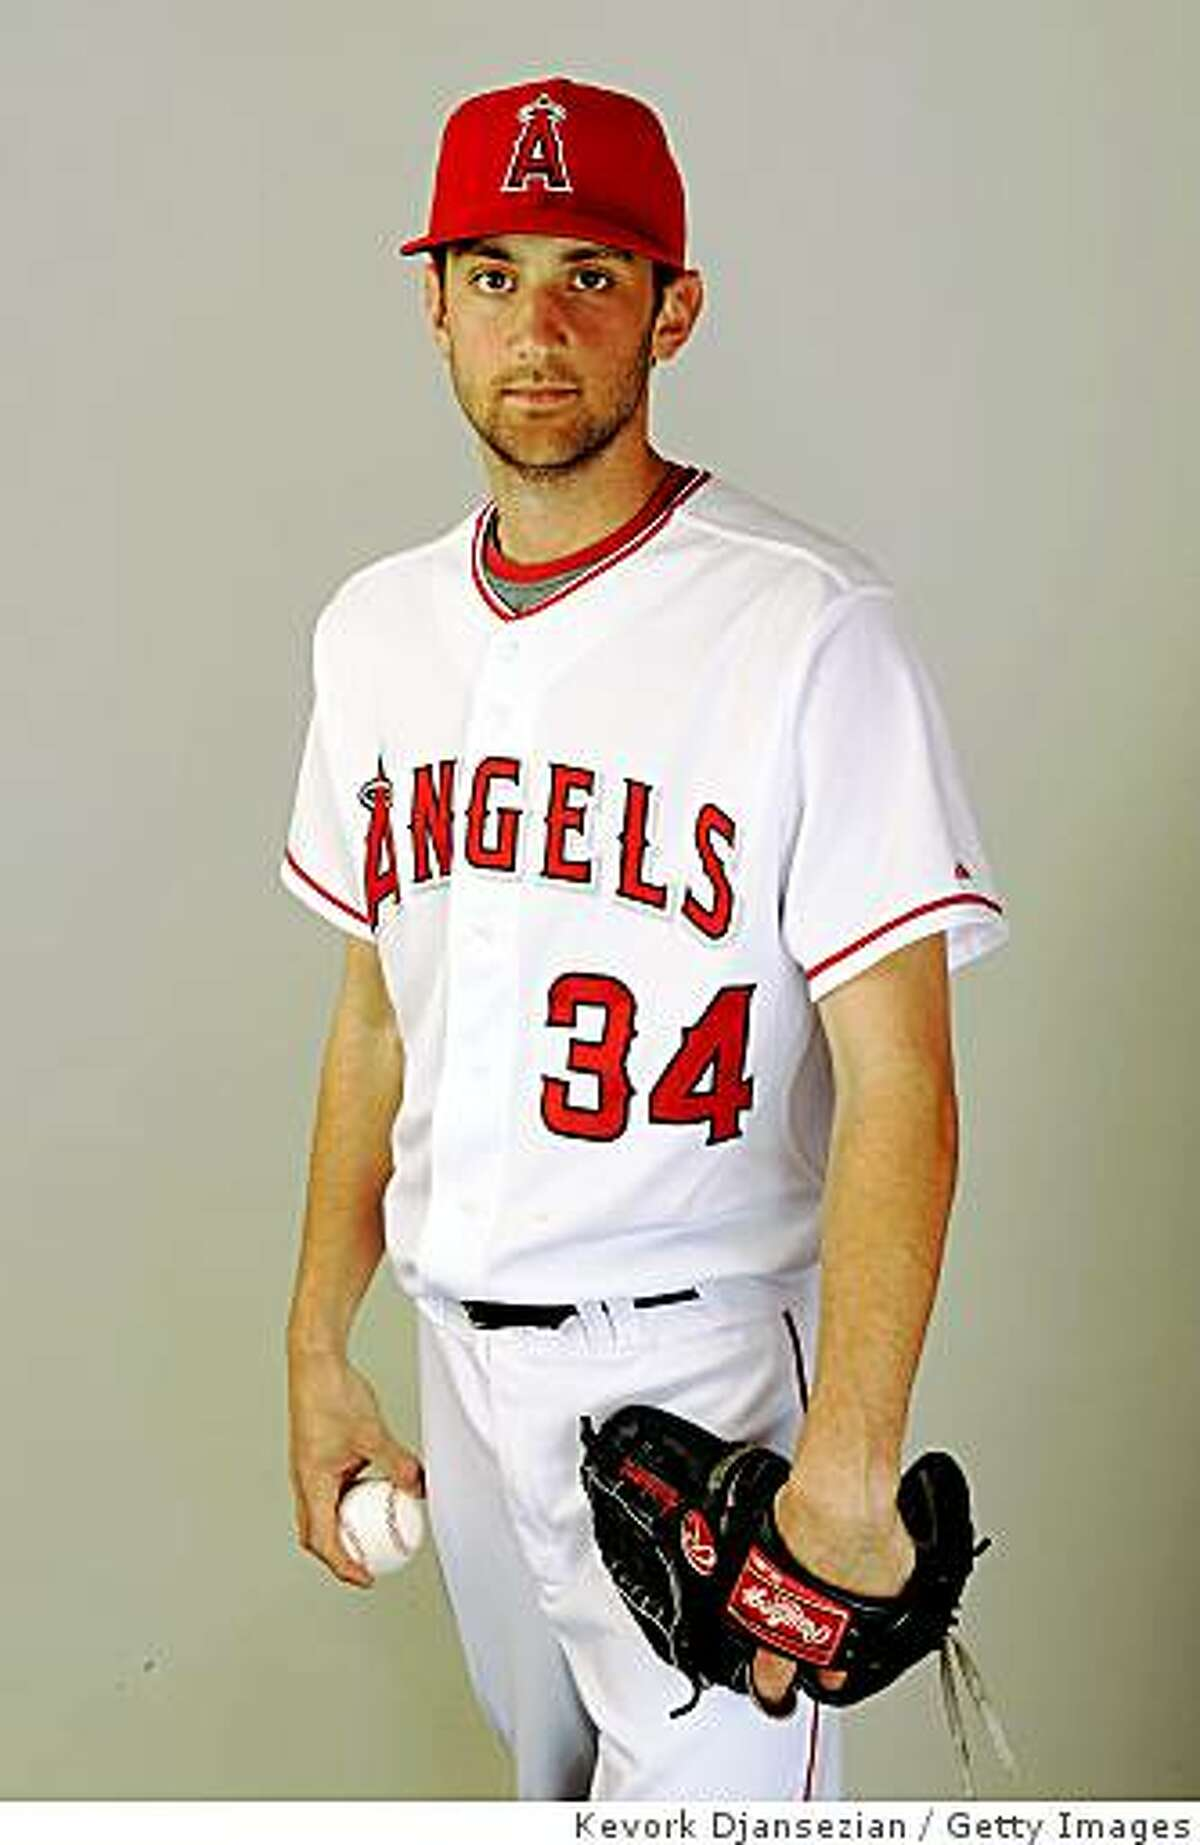 TEMPE, AZ - FEBRUARY 25: (FILE PHOTO) Pitcher Nick Adenhart #34 of the Los Angeles Angels of Anaheim poses for a photo on picture day February 25, 2009 in Tempe, Arizona. Adenhart, a league rookie, was killed in an auto accident early Thursday morning after pitching in a game on April 8. (Photo by Kevork Djansezian/Getty Images)